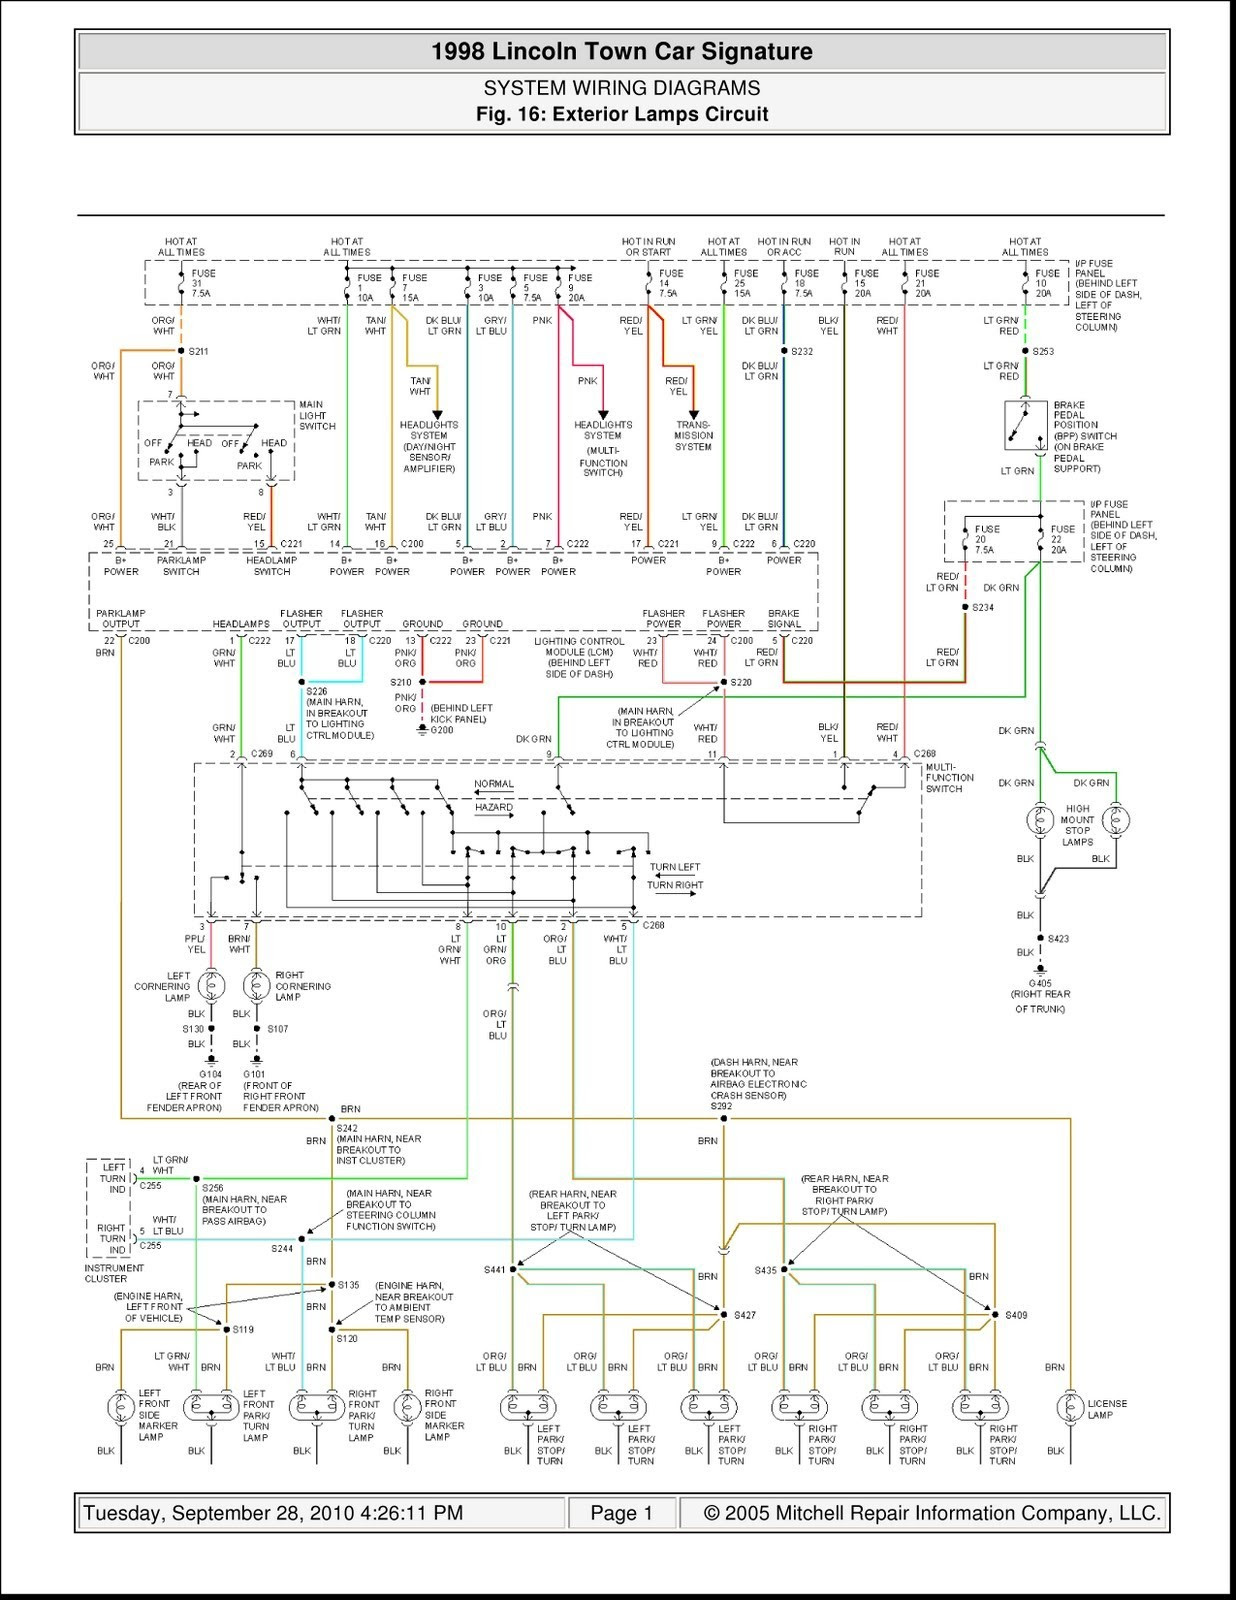 2008 Lincoln Town Car Wiring Diagram.html